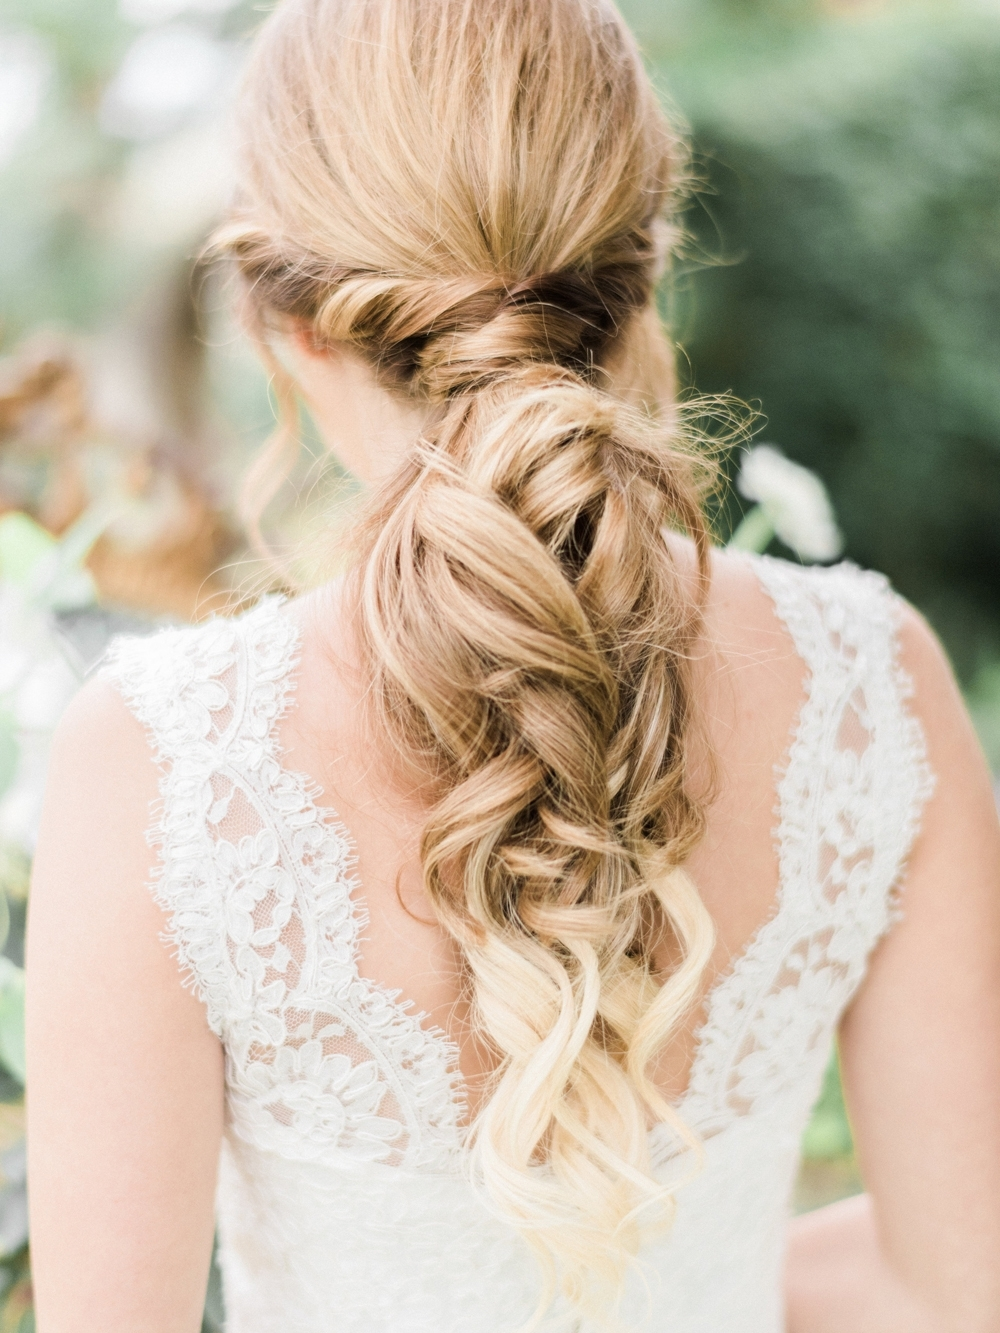 Fashionable Relaxed Wedding Hairstyles Throughout Wedding Hair: Pretty Hairstyles For Brides With Long Hair – Inside (View 8 of 15)